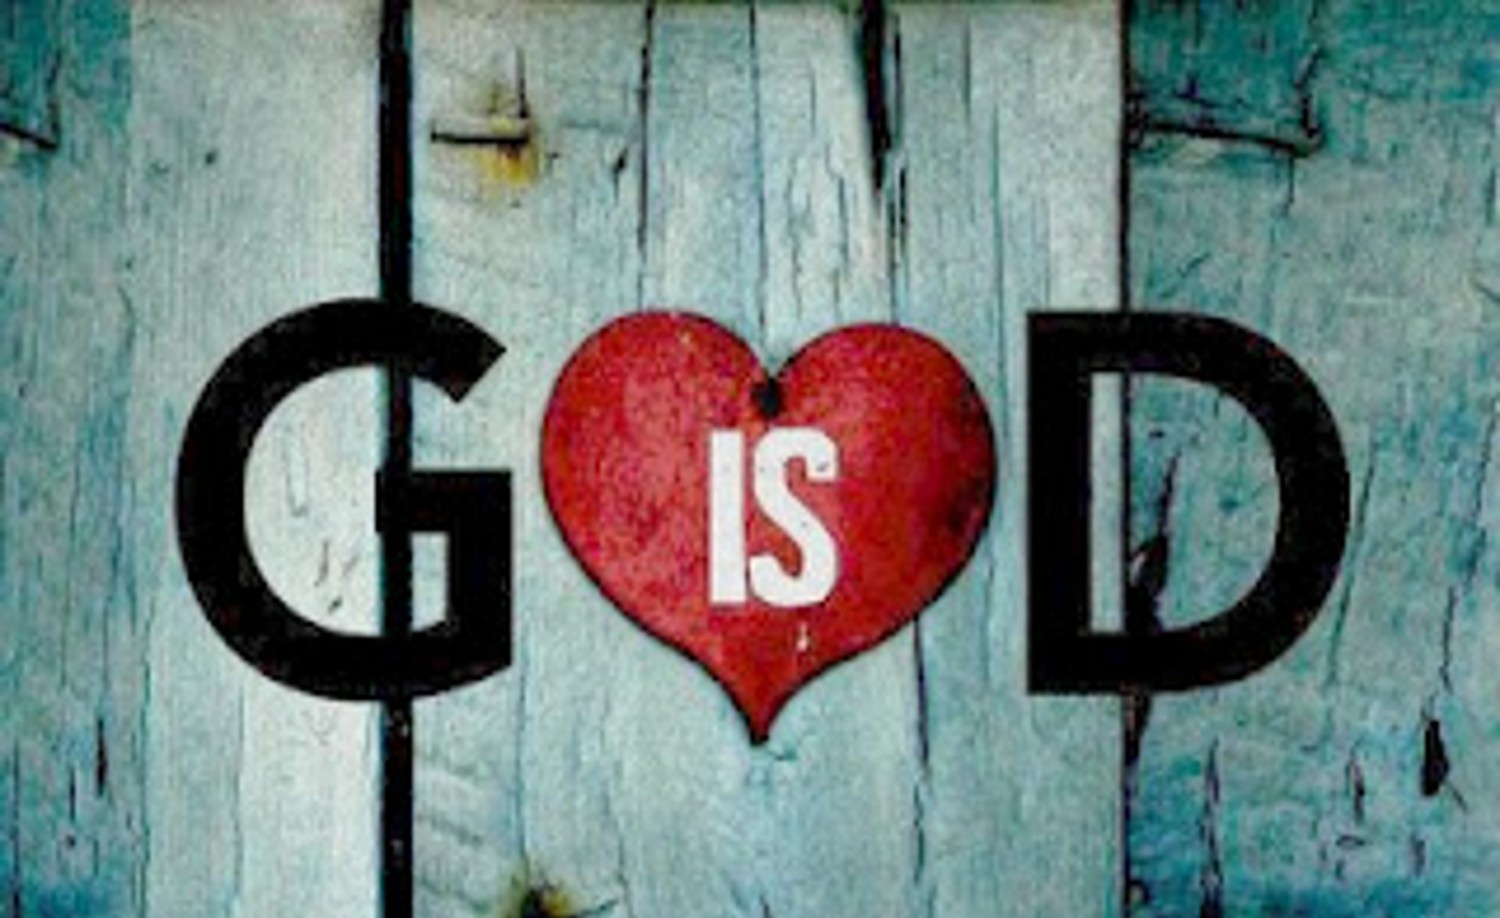 God Is Love wallpaper Background HD  Download 1500x918